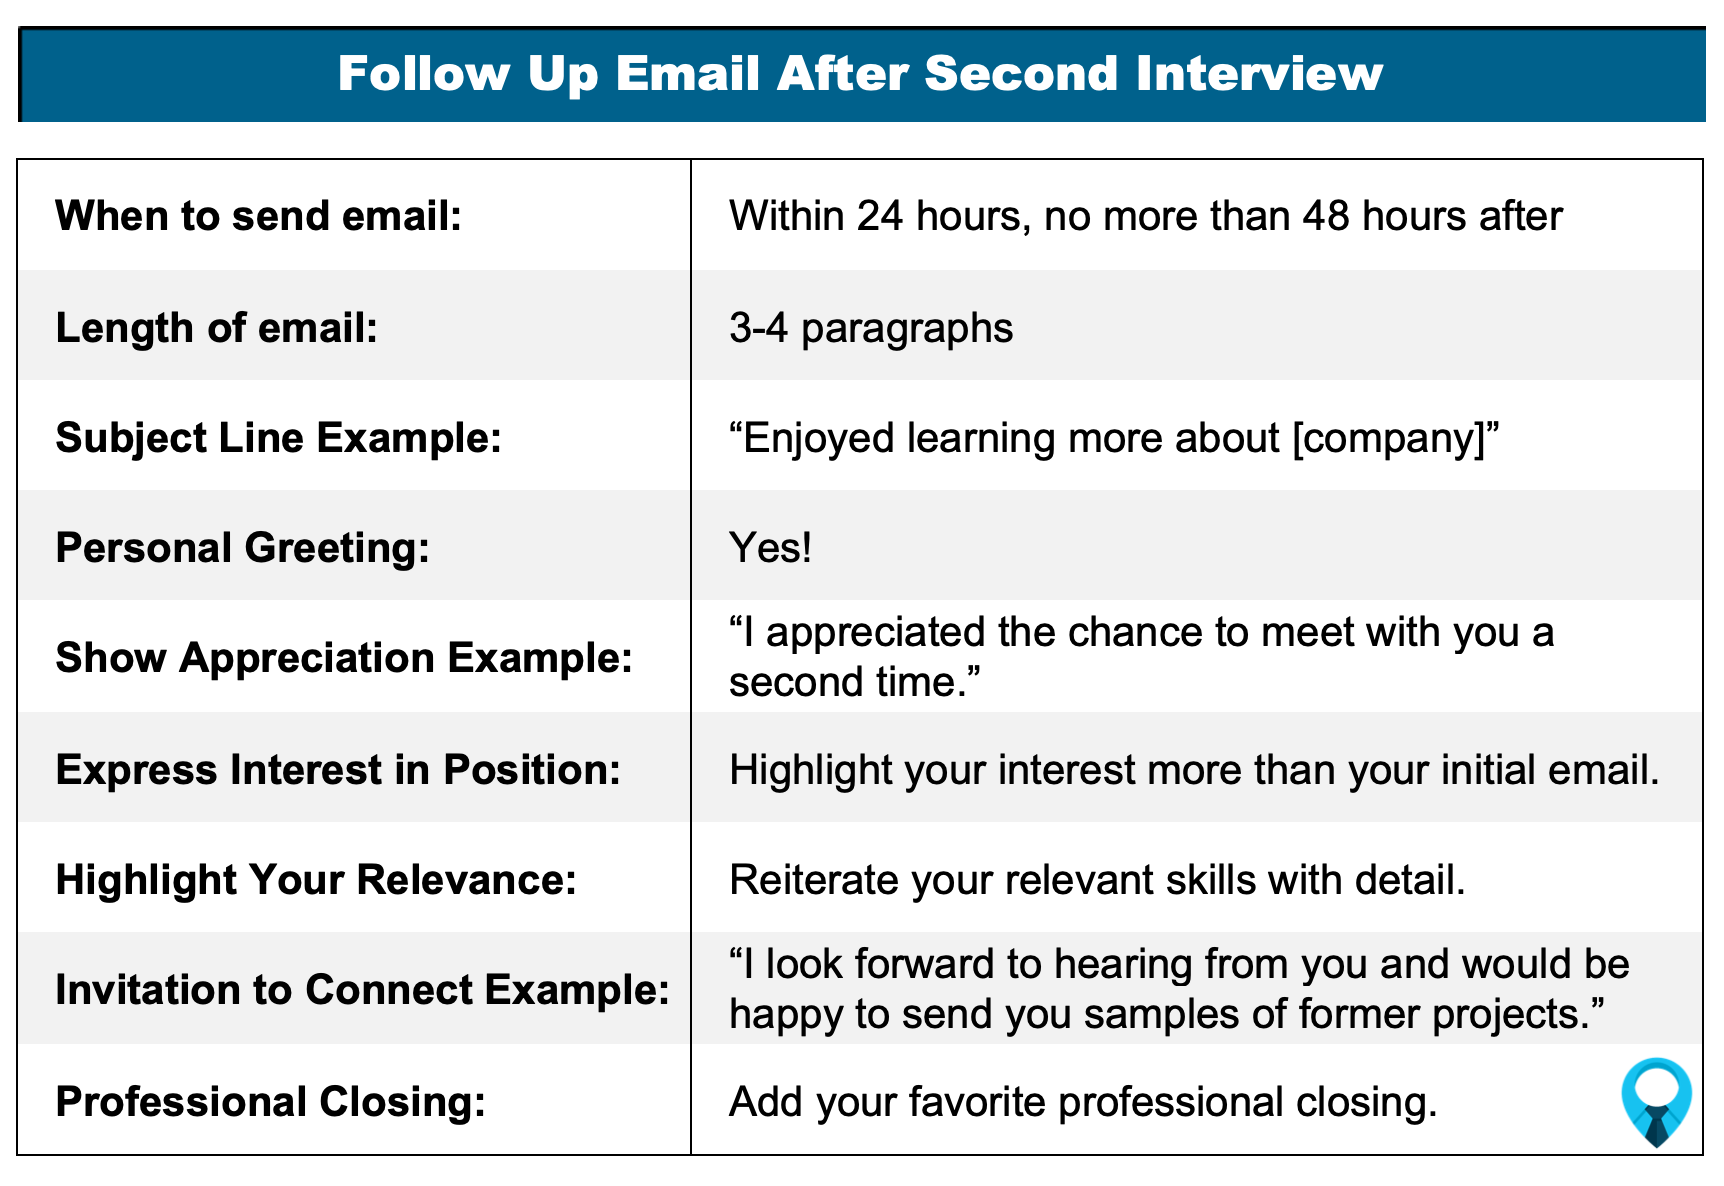 Follow Up Email after Second Interview